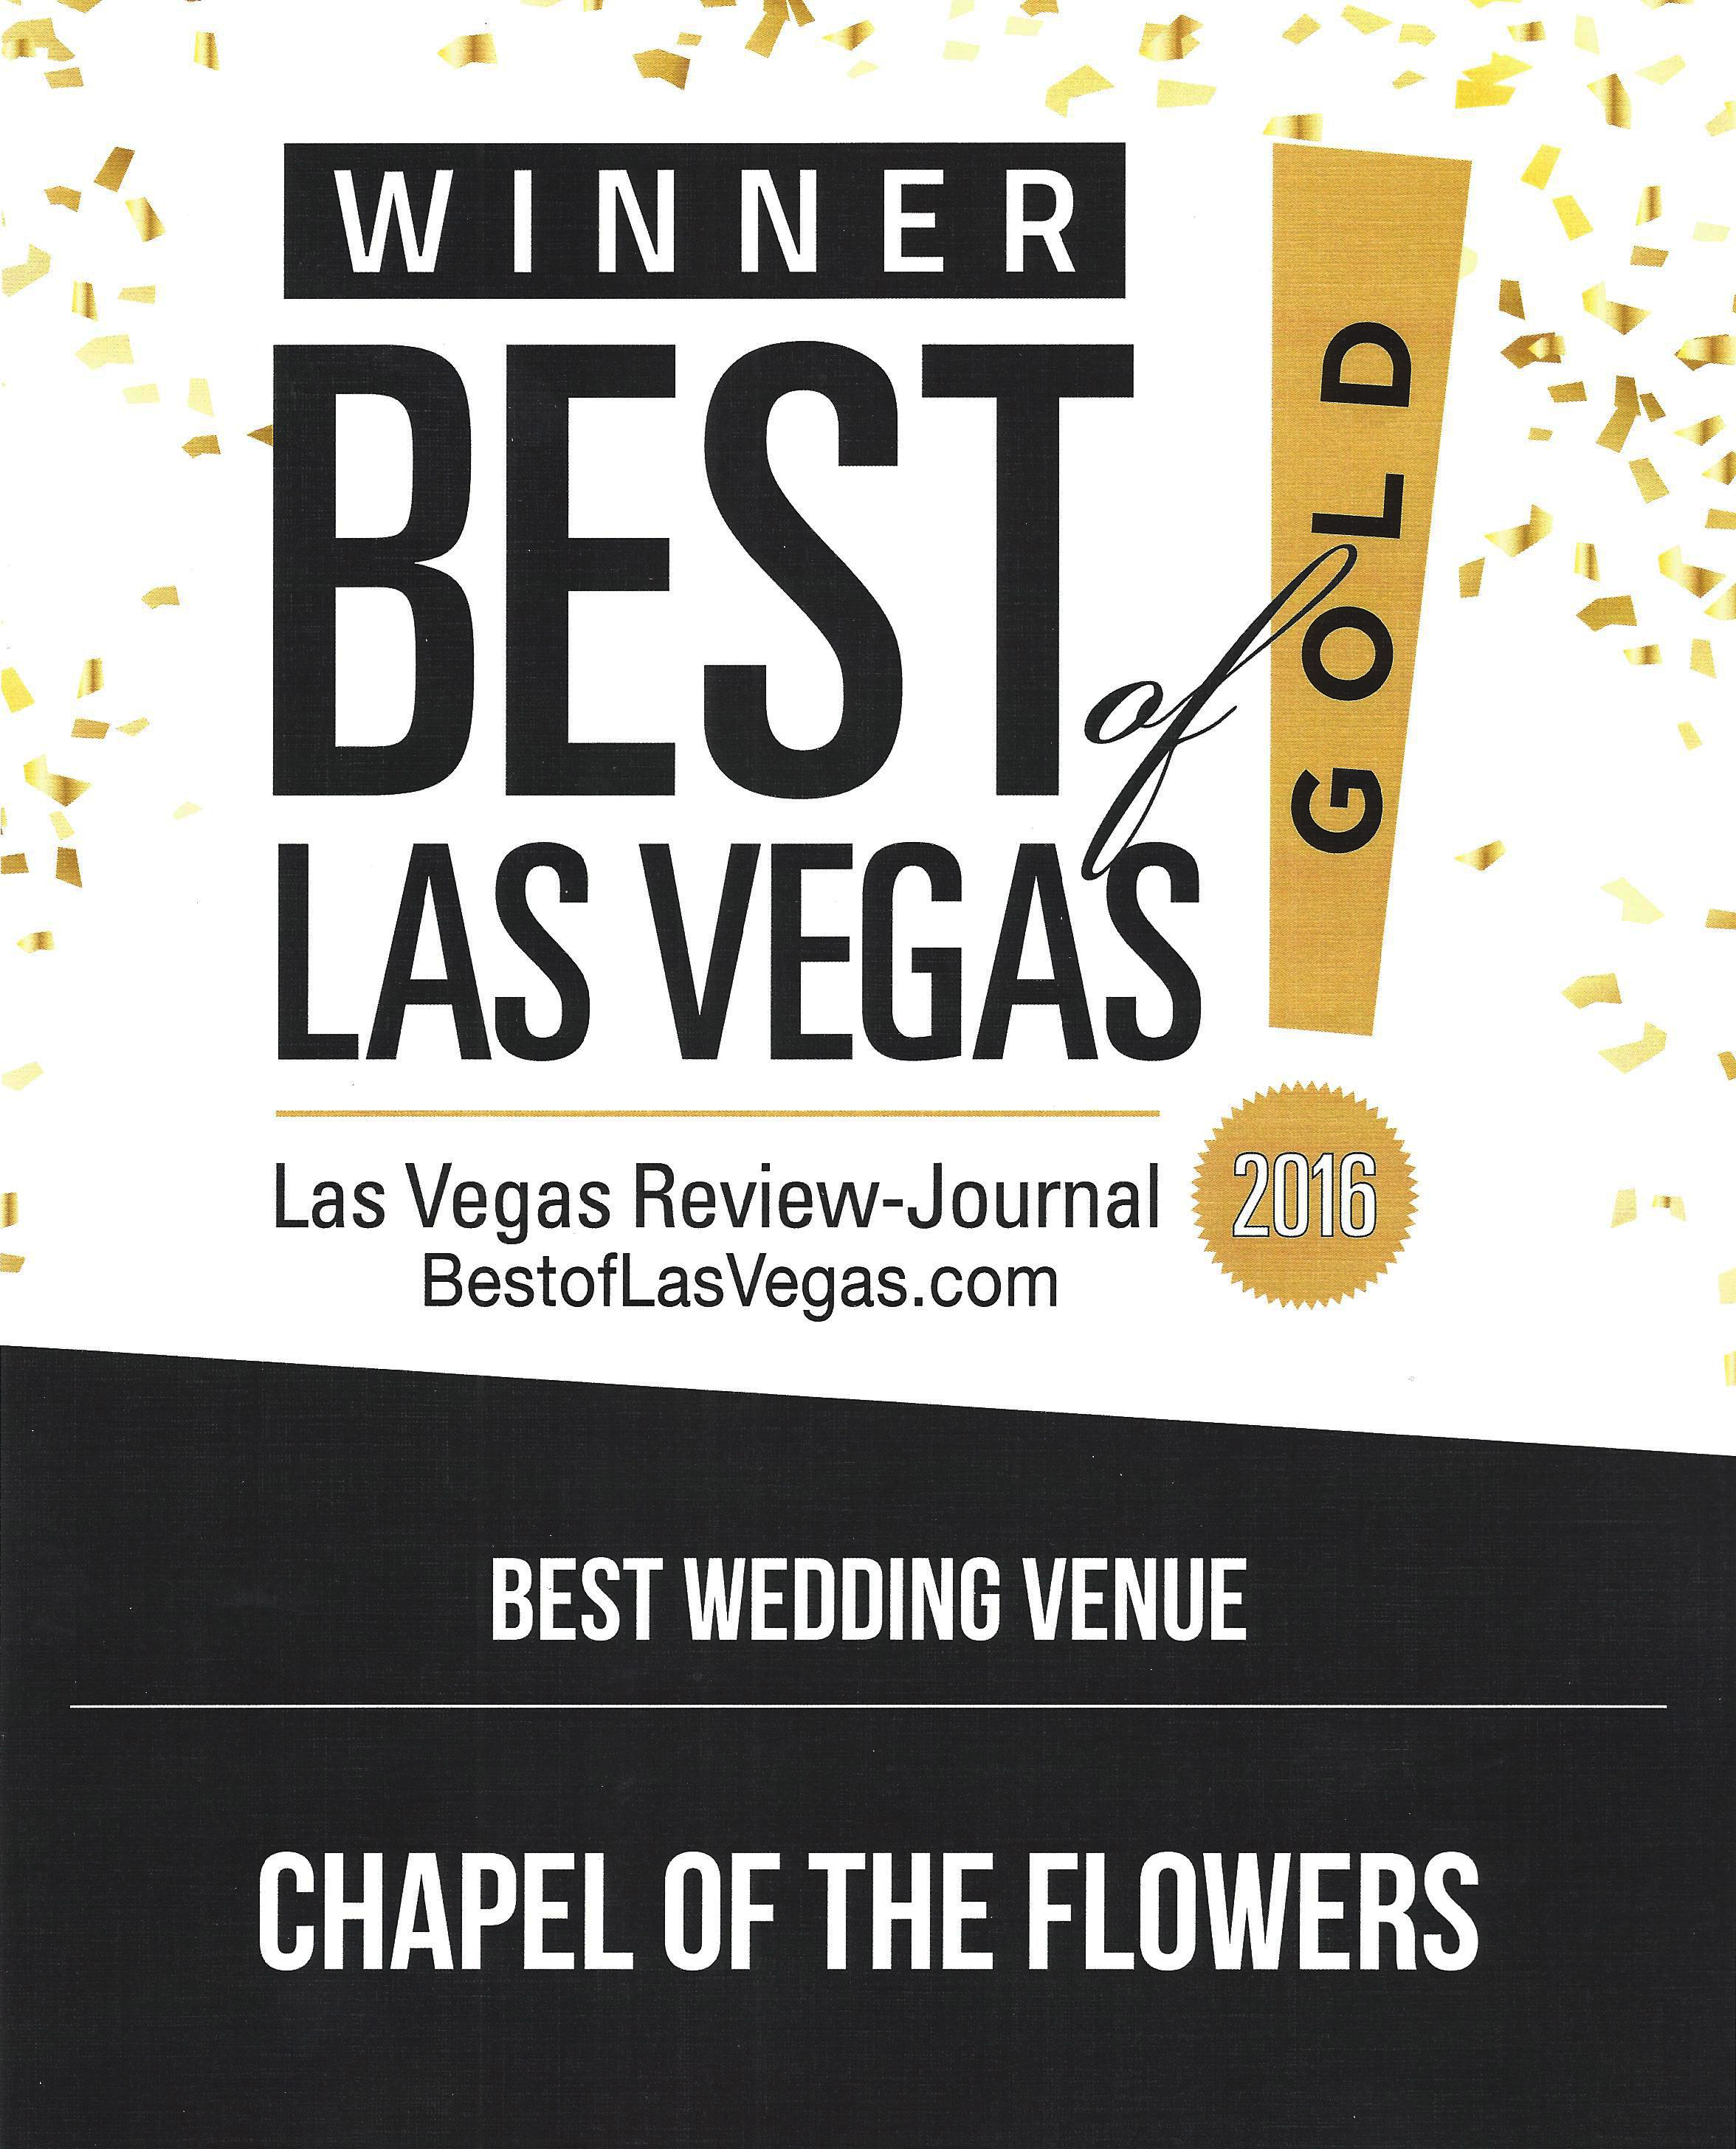 "Chapel of the Flowers Named ""Best Wedding Venue"" in Las Vegas"